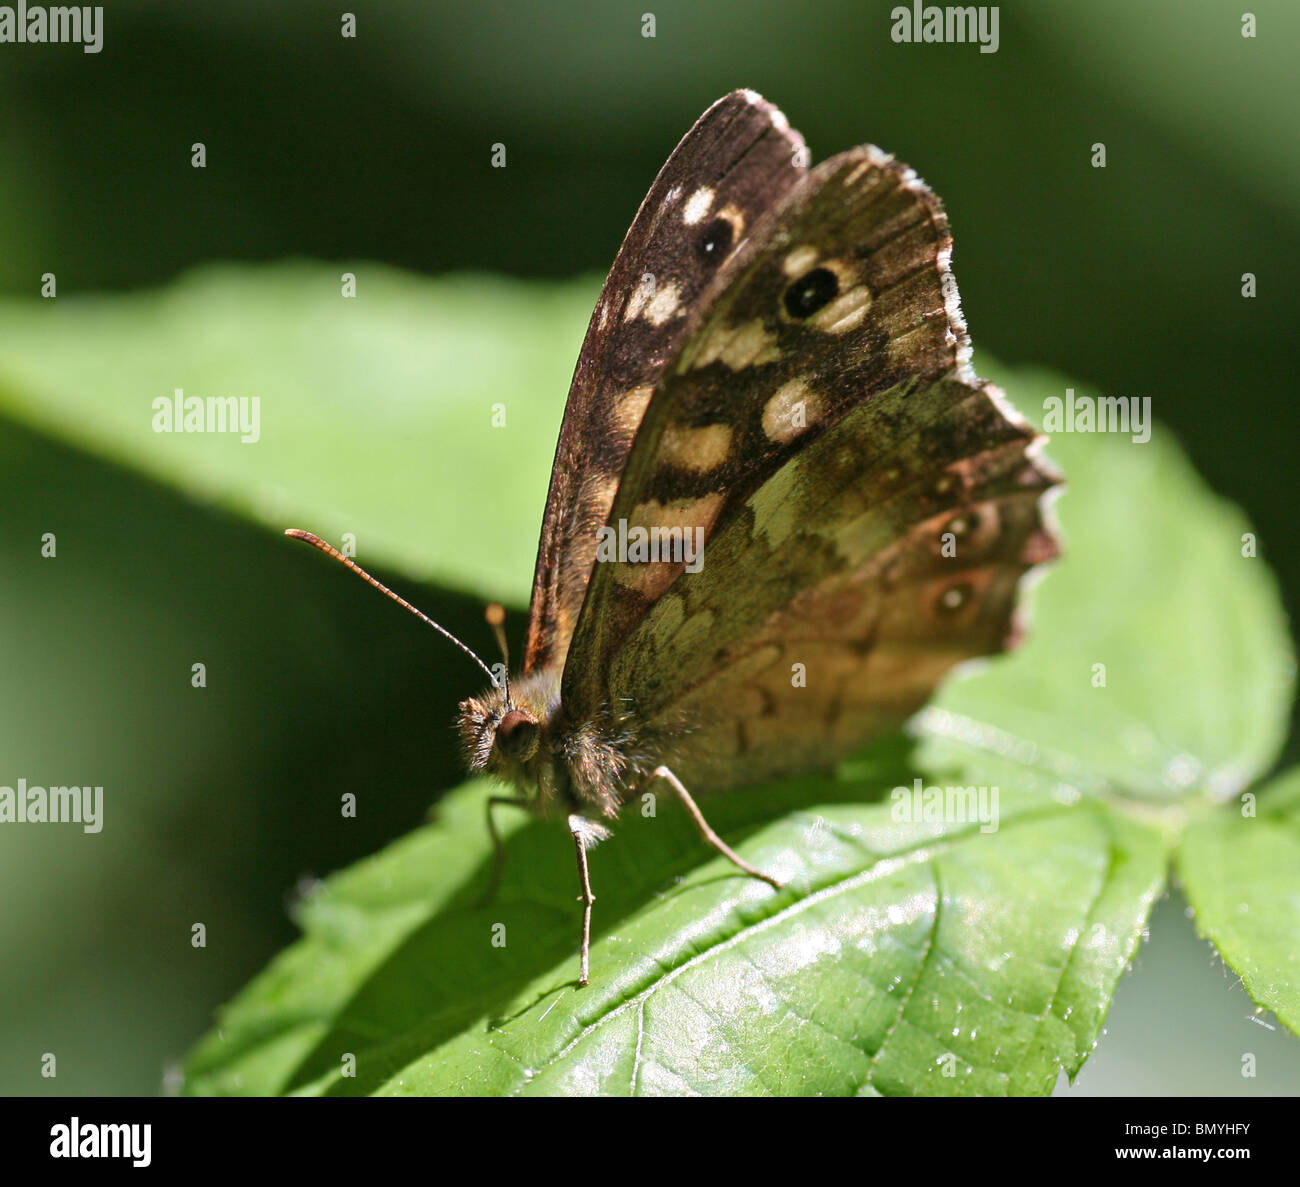 Speckled Wood (Pararge aegeria) butterfly - Stock Image